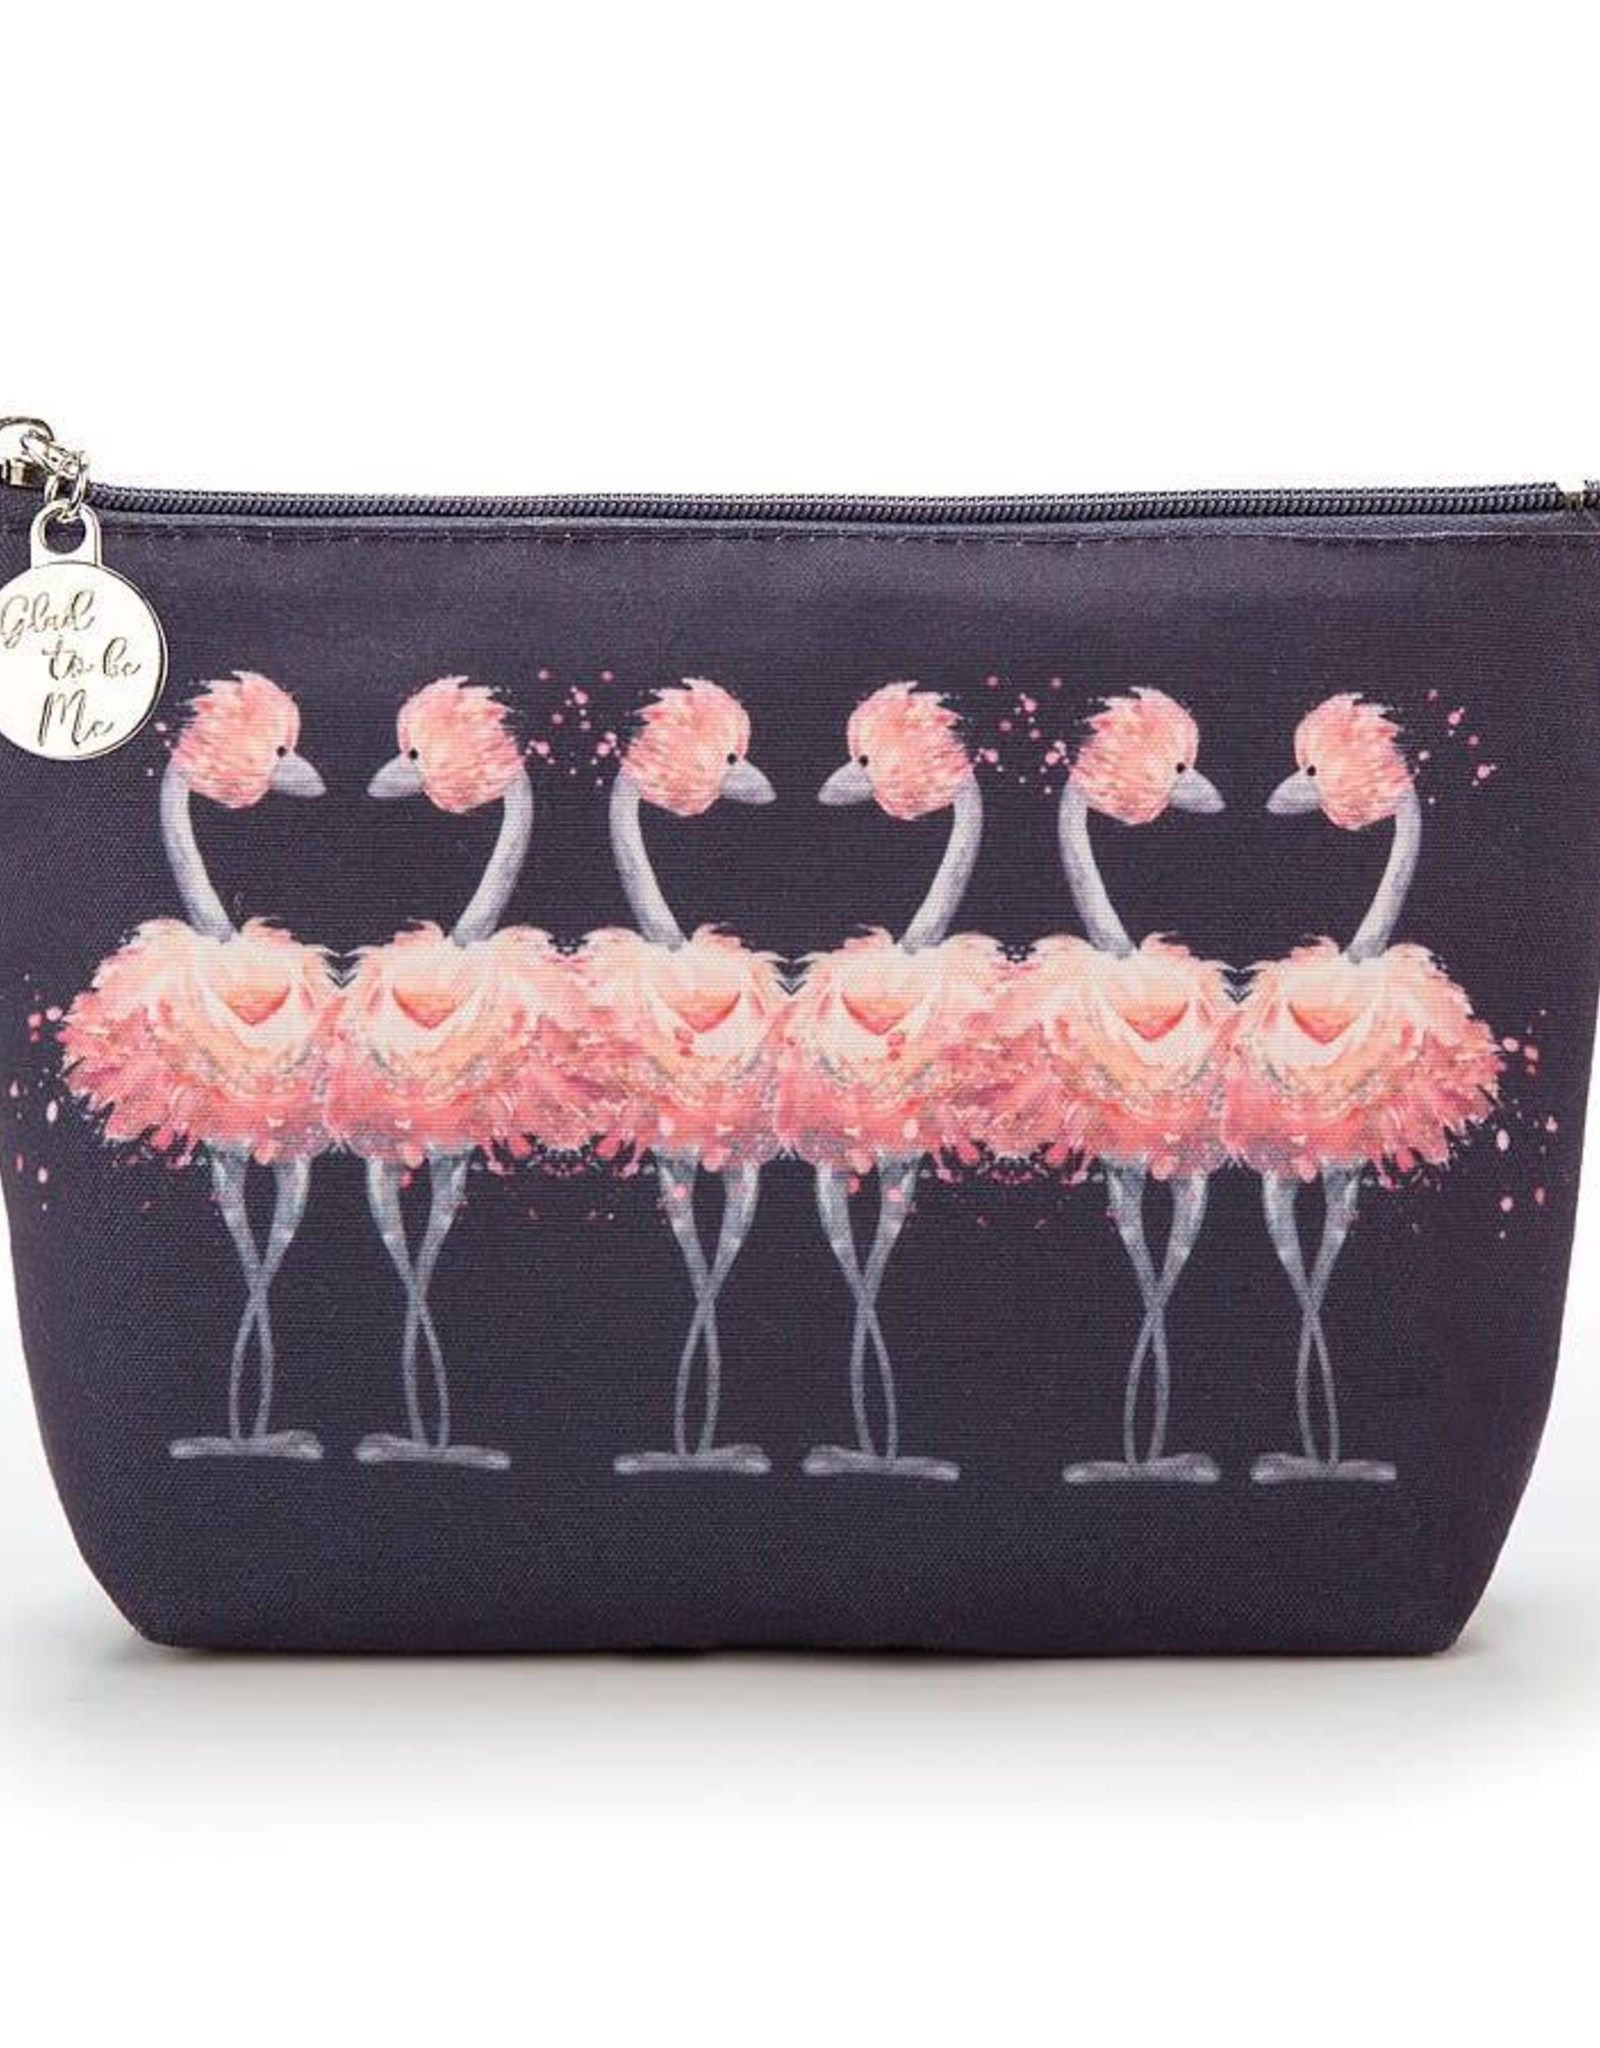 Jellycat Glad to Be Me Navy Small Bag